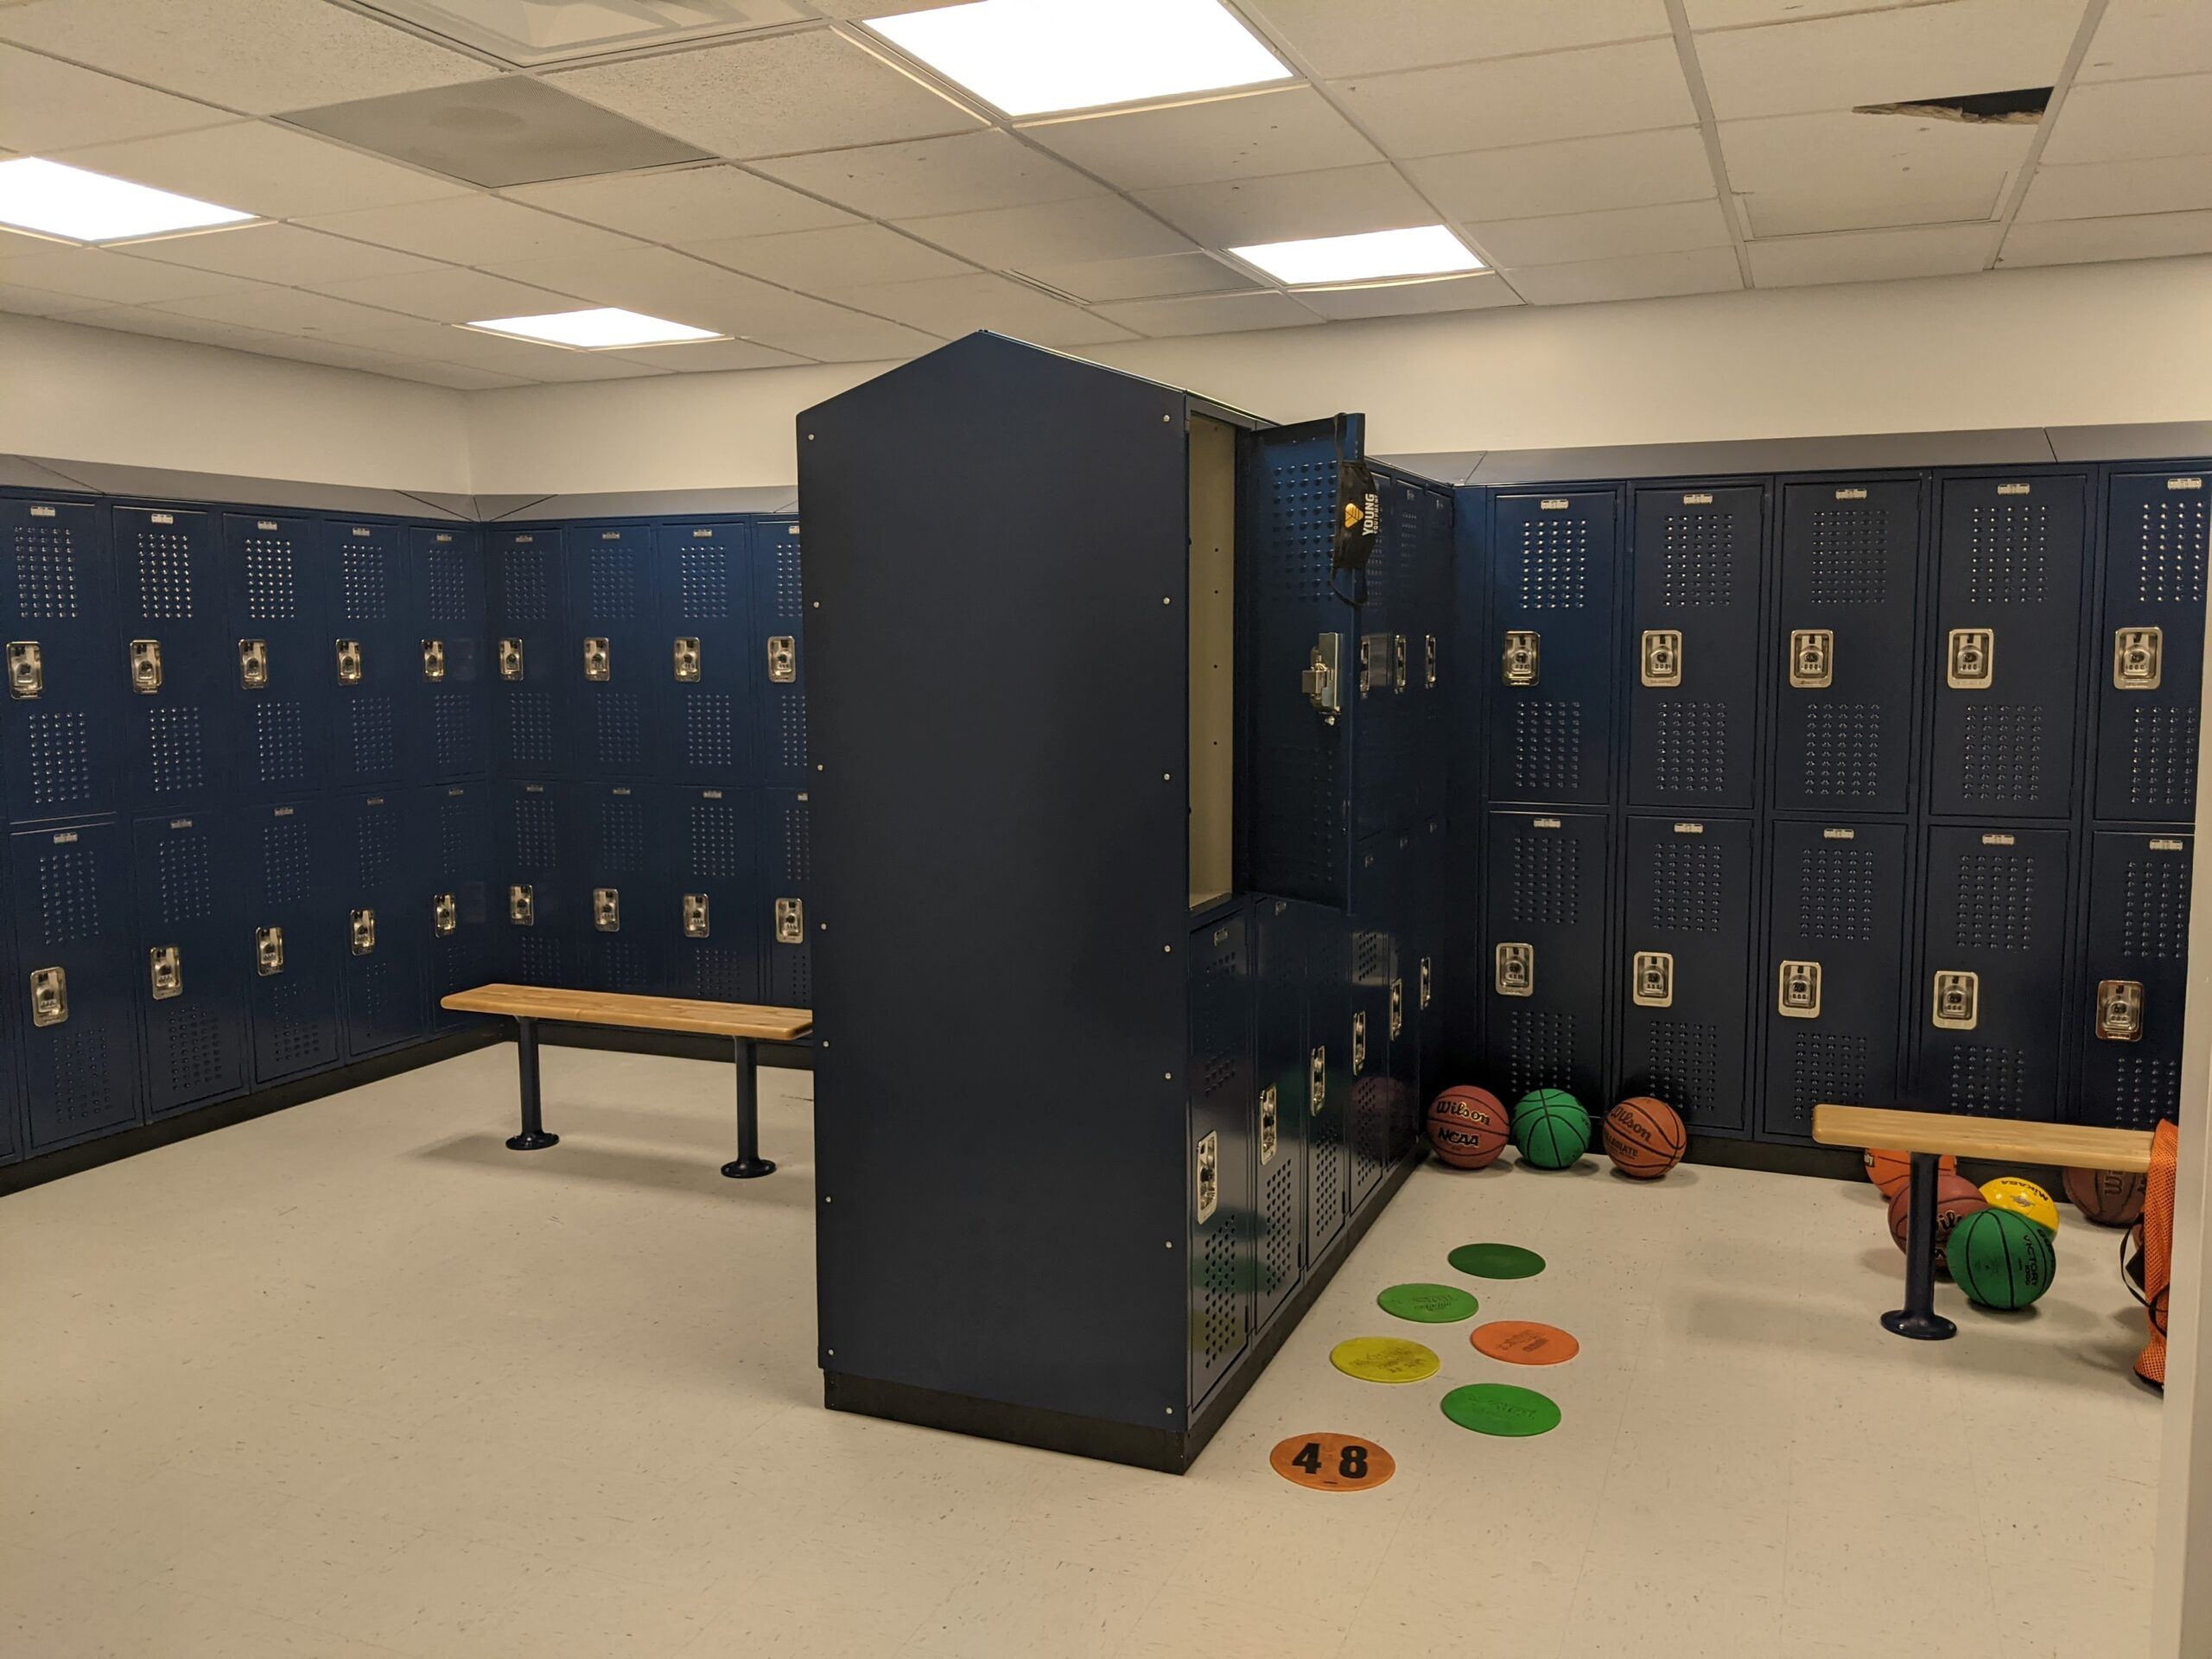 Blue two tier lockers with basketballs and one locker open